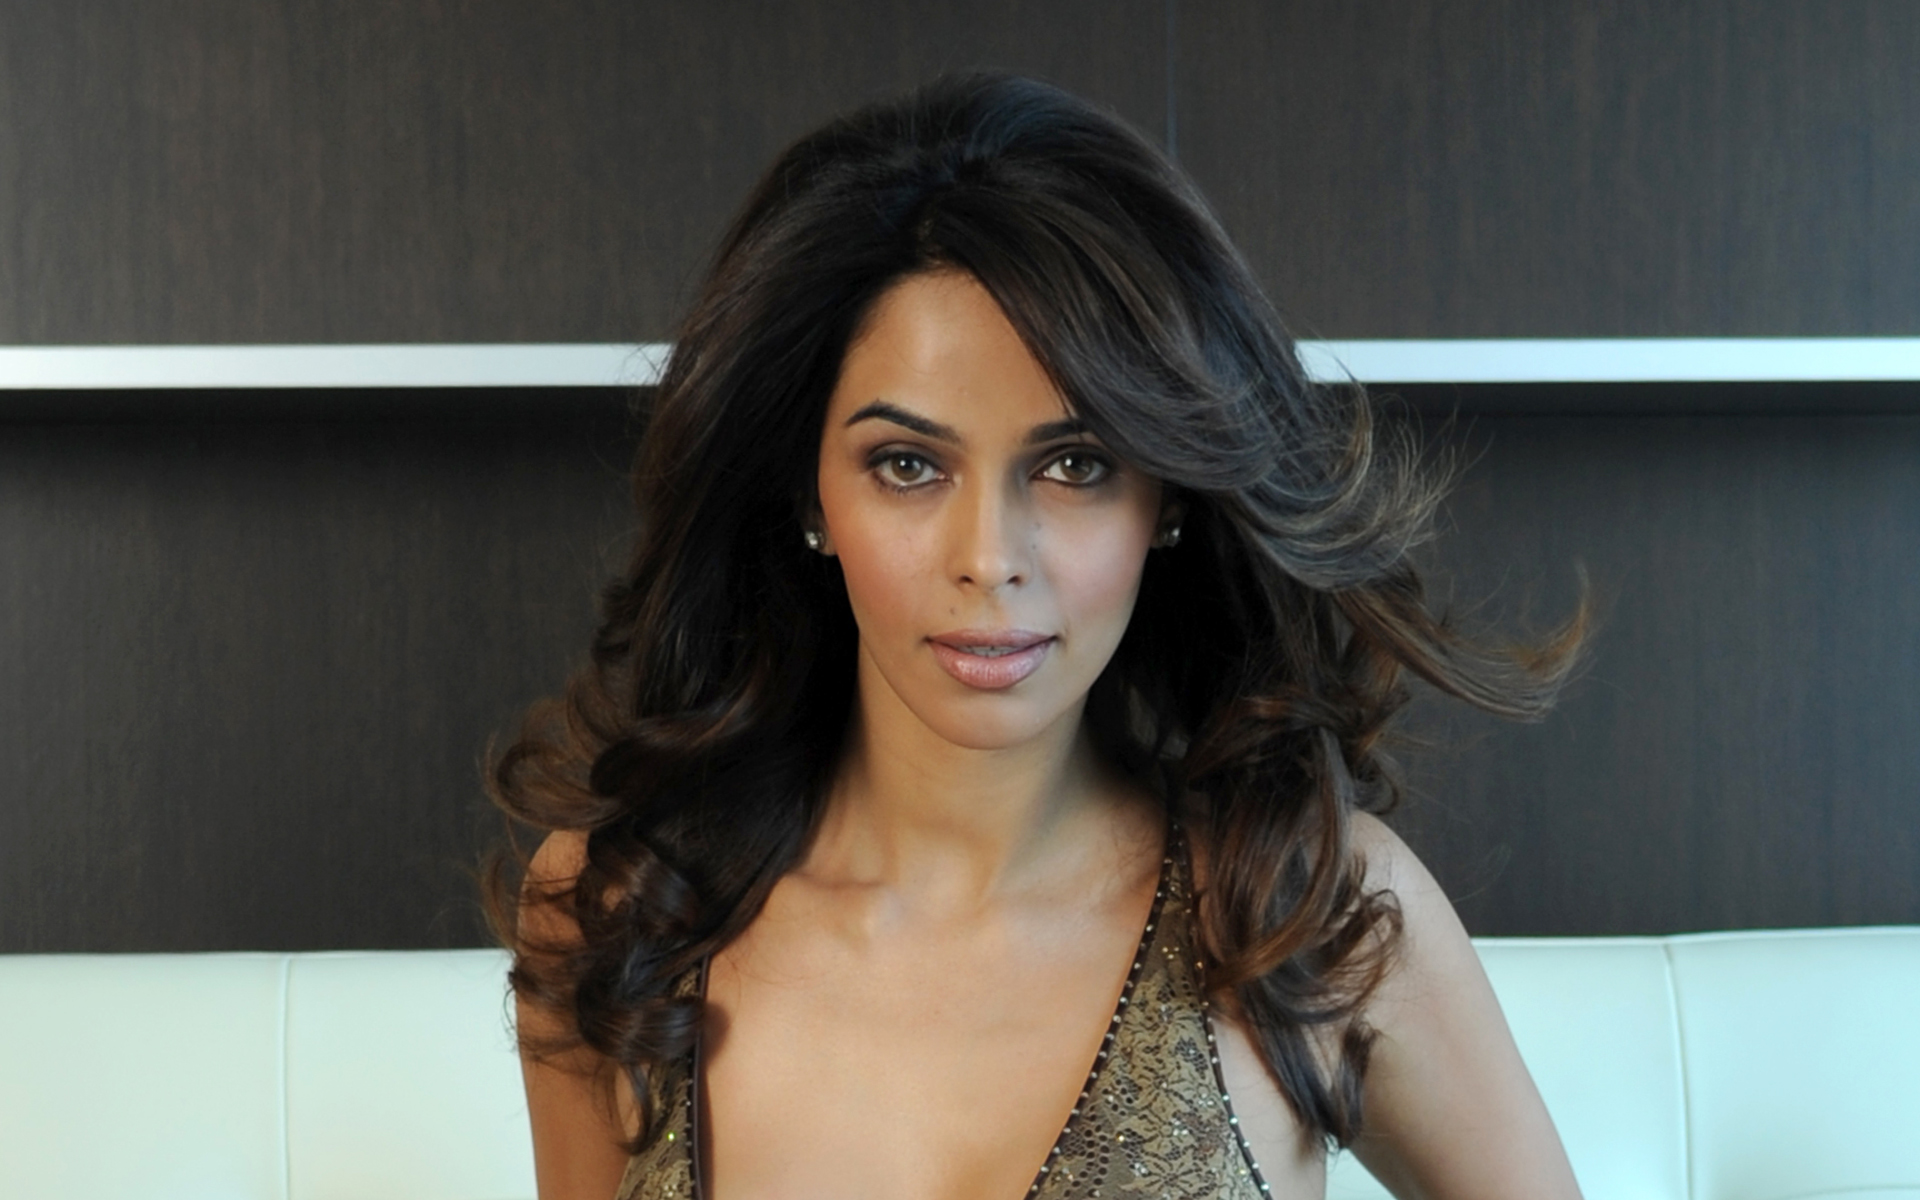 Mallika sherawat actress cute face wallpaper